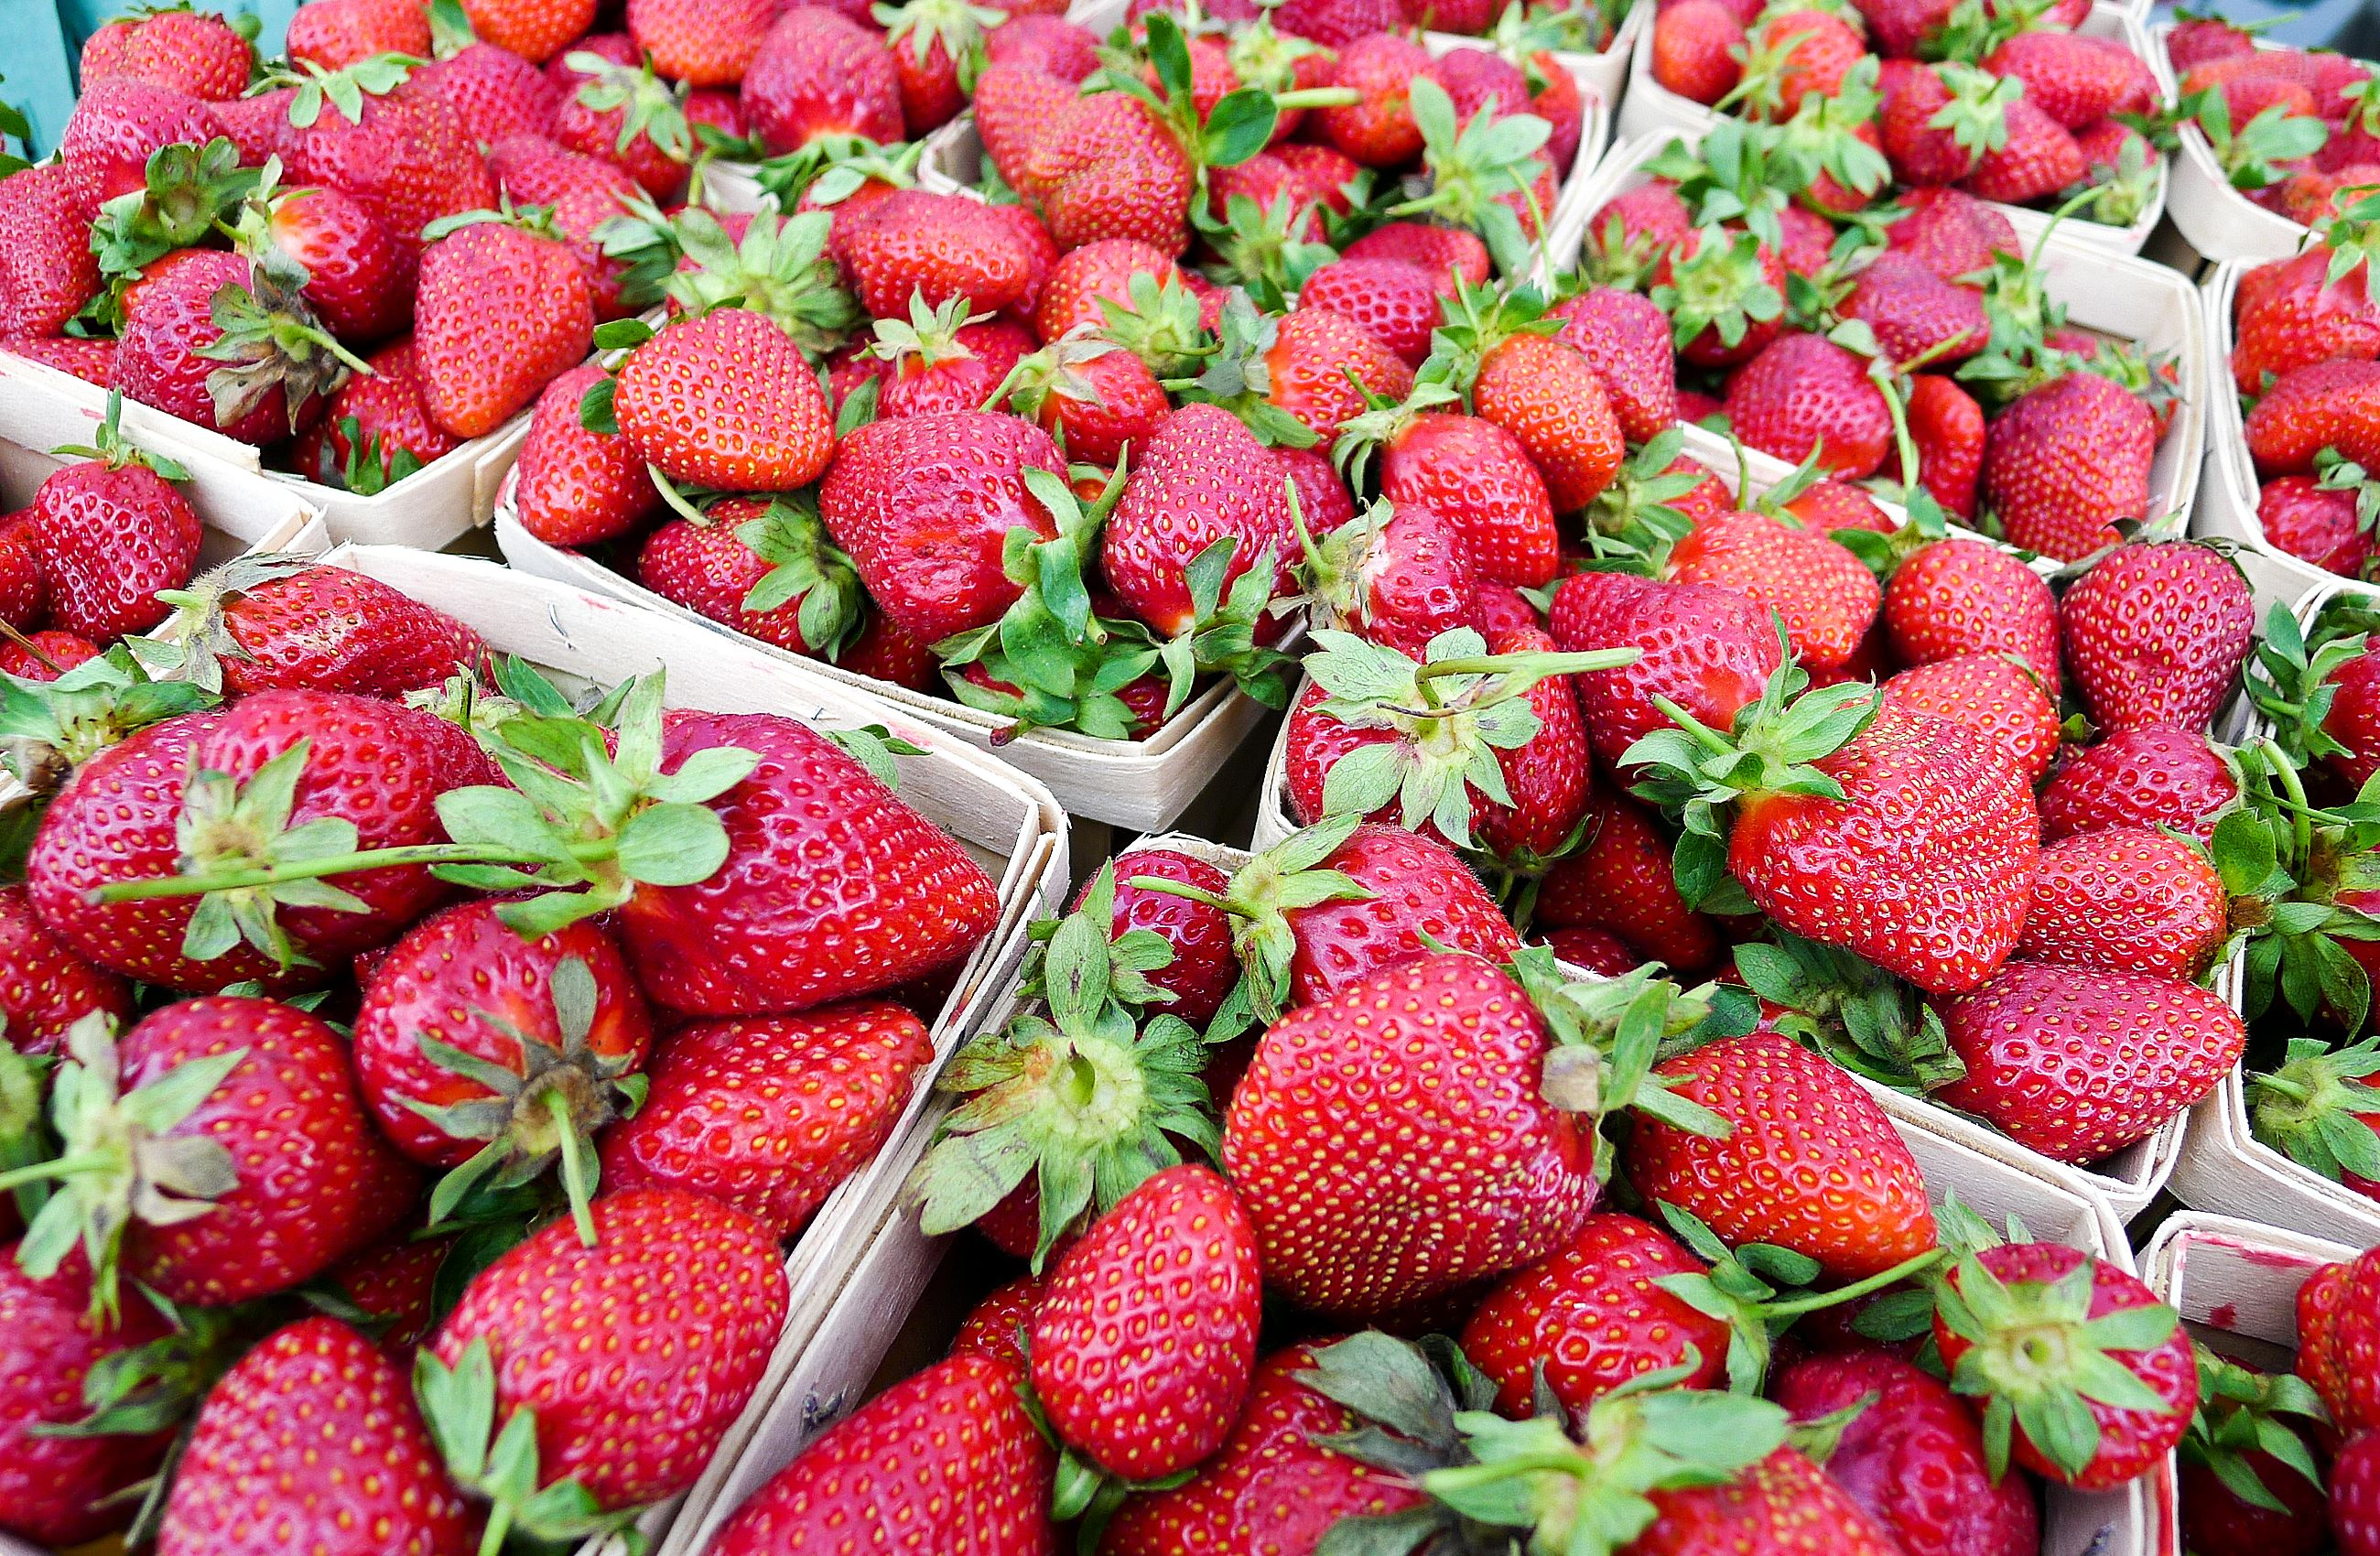 P1230755-2 Simmons Farm was selling strawberries from a partner farm in Ohio that you could smell from several feet away at opening day at the Upper St. Clair Farmers Market on May 29.